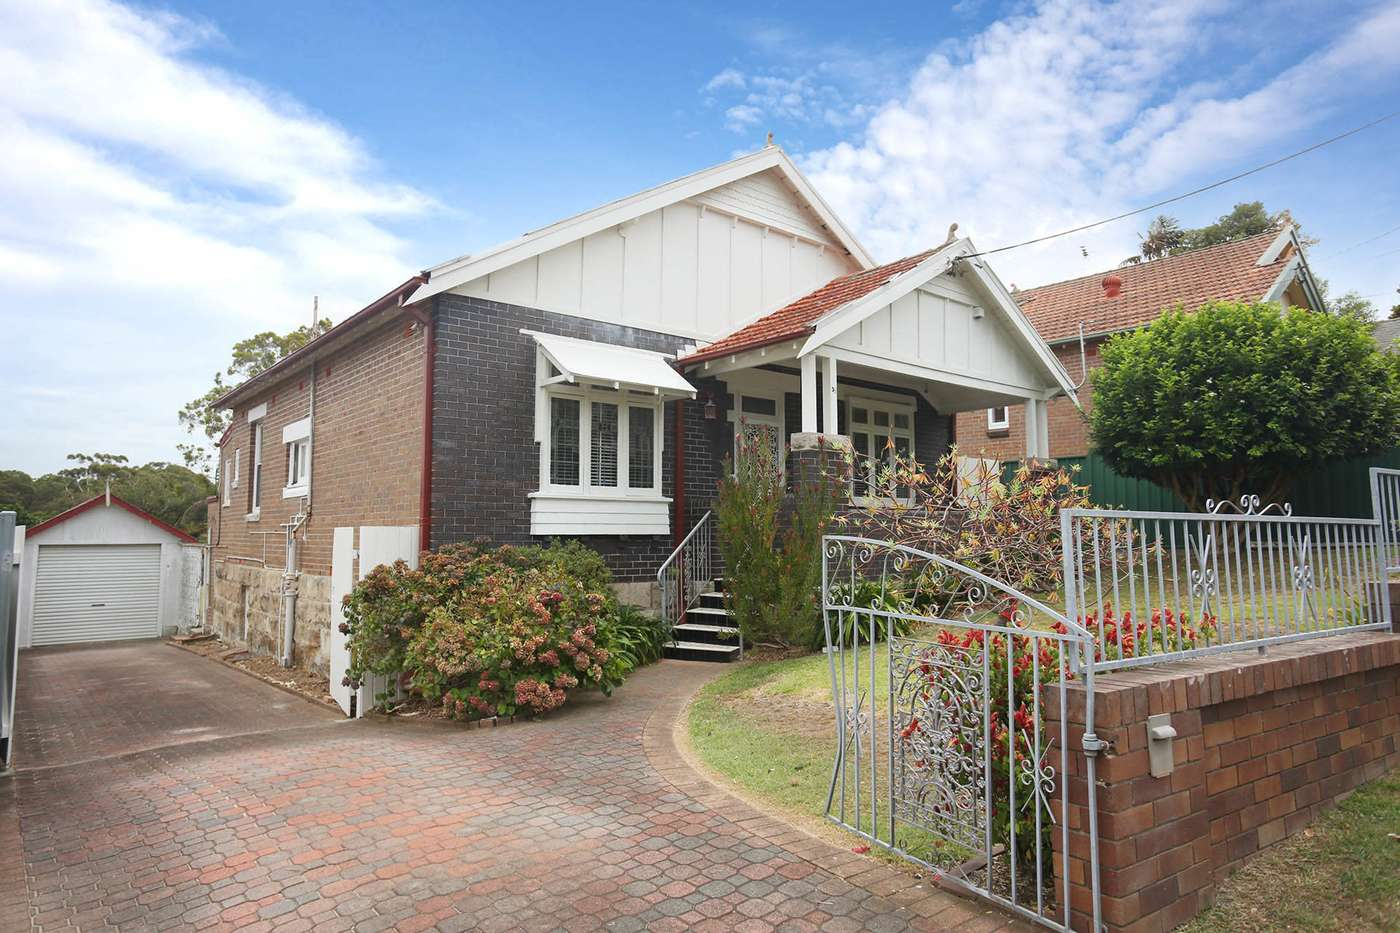 Main view of Homely house listing, 39 Maher Street, Hurstville, NSW 2220